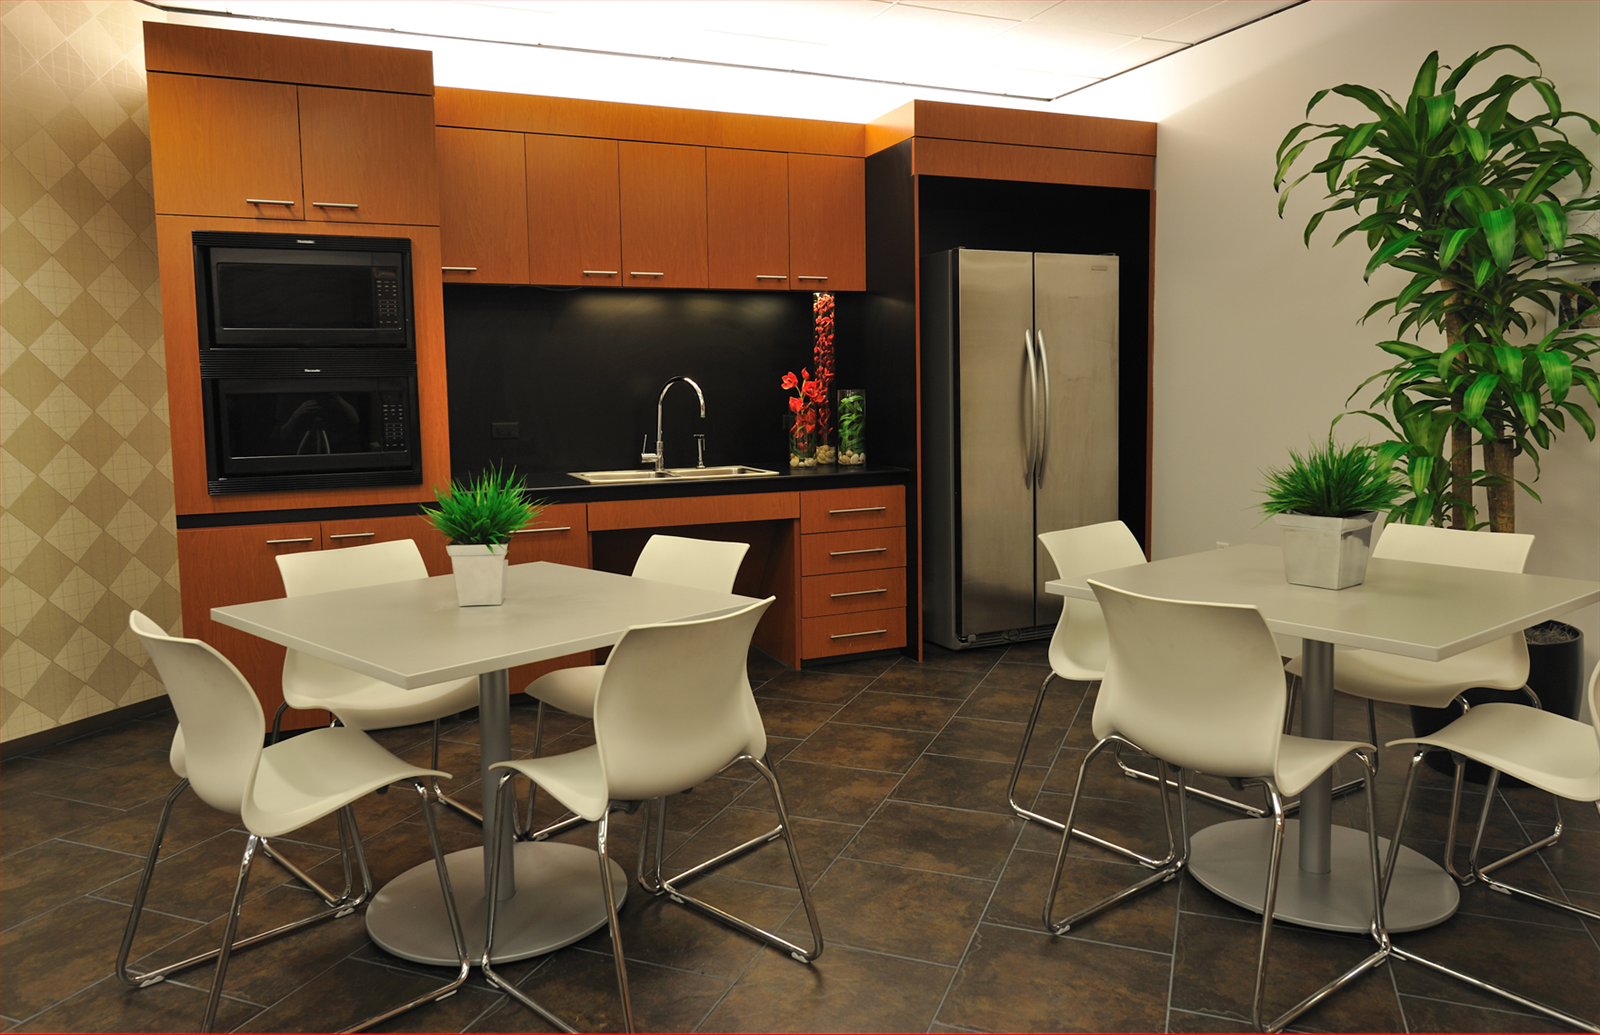 Small Employee Break Room Design Ideas